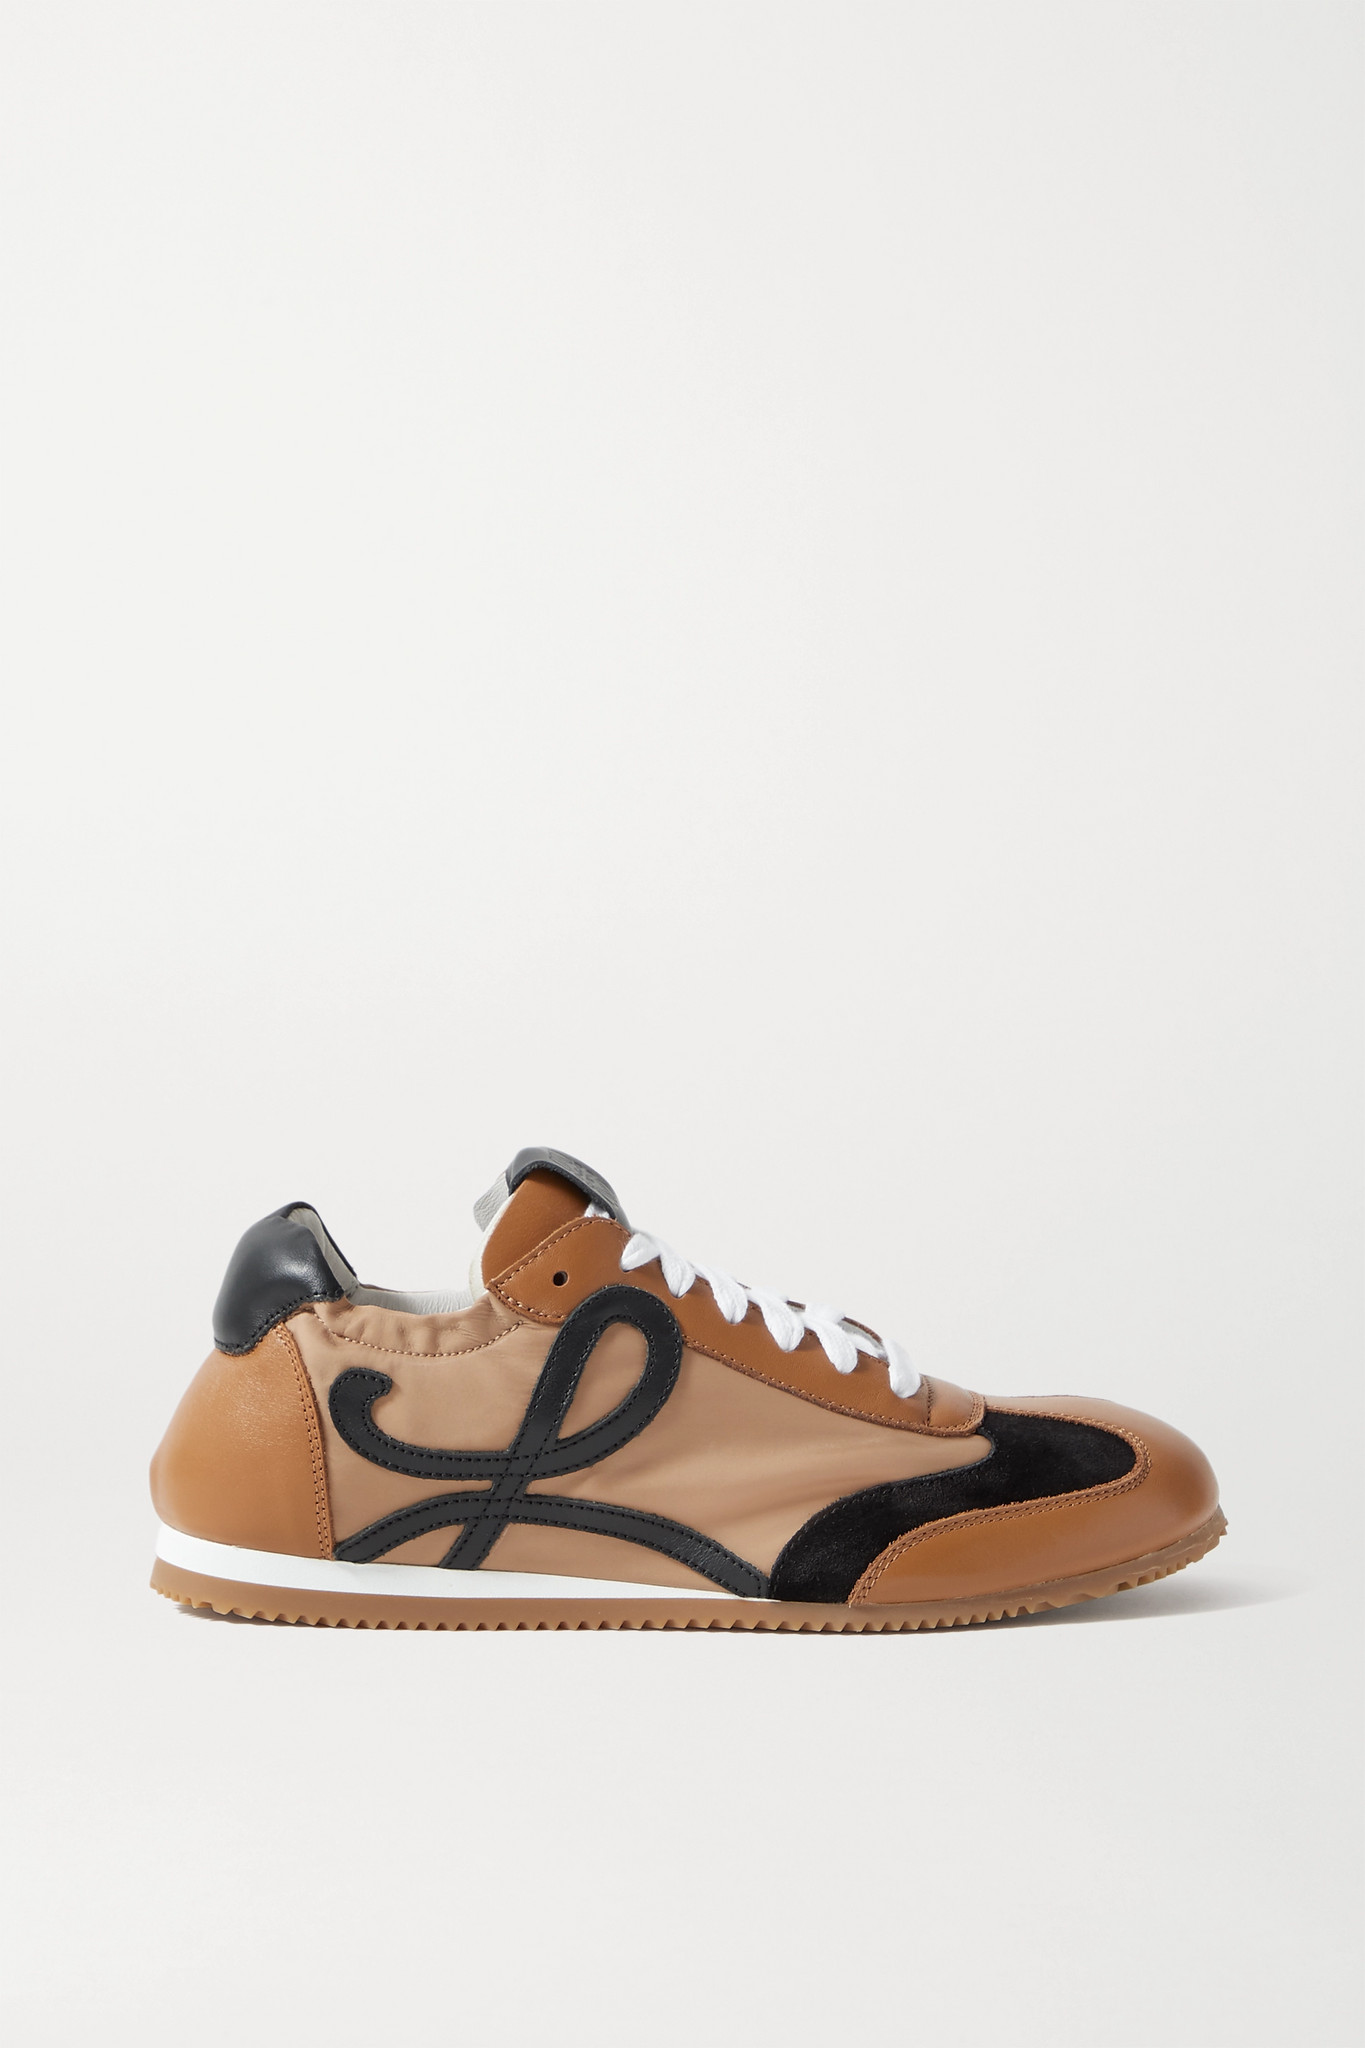 LOEWE - Ballet Runner Shell, Suede And Leather Sneakers - Brown - IT36